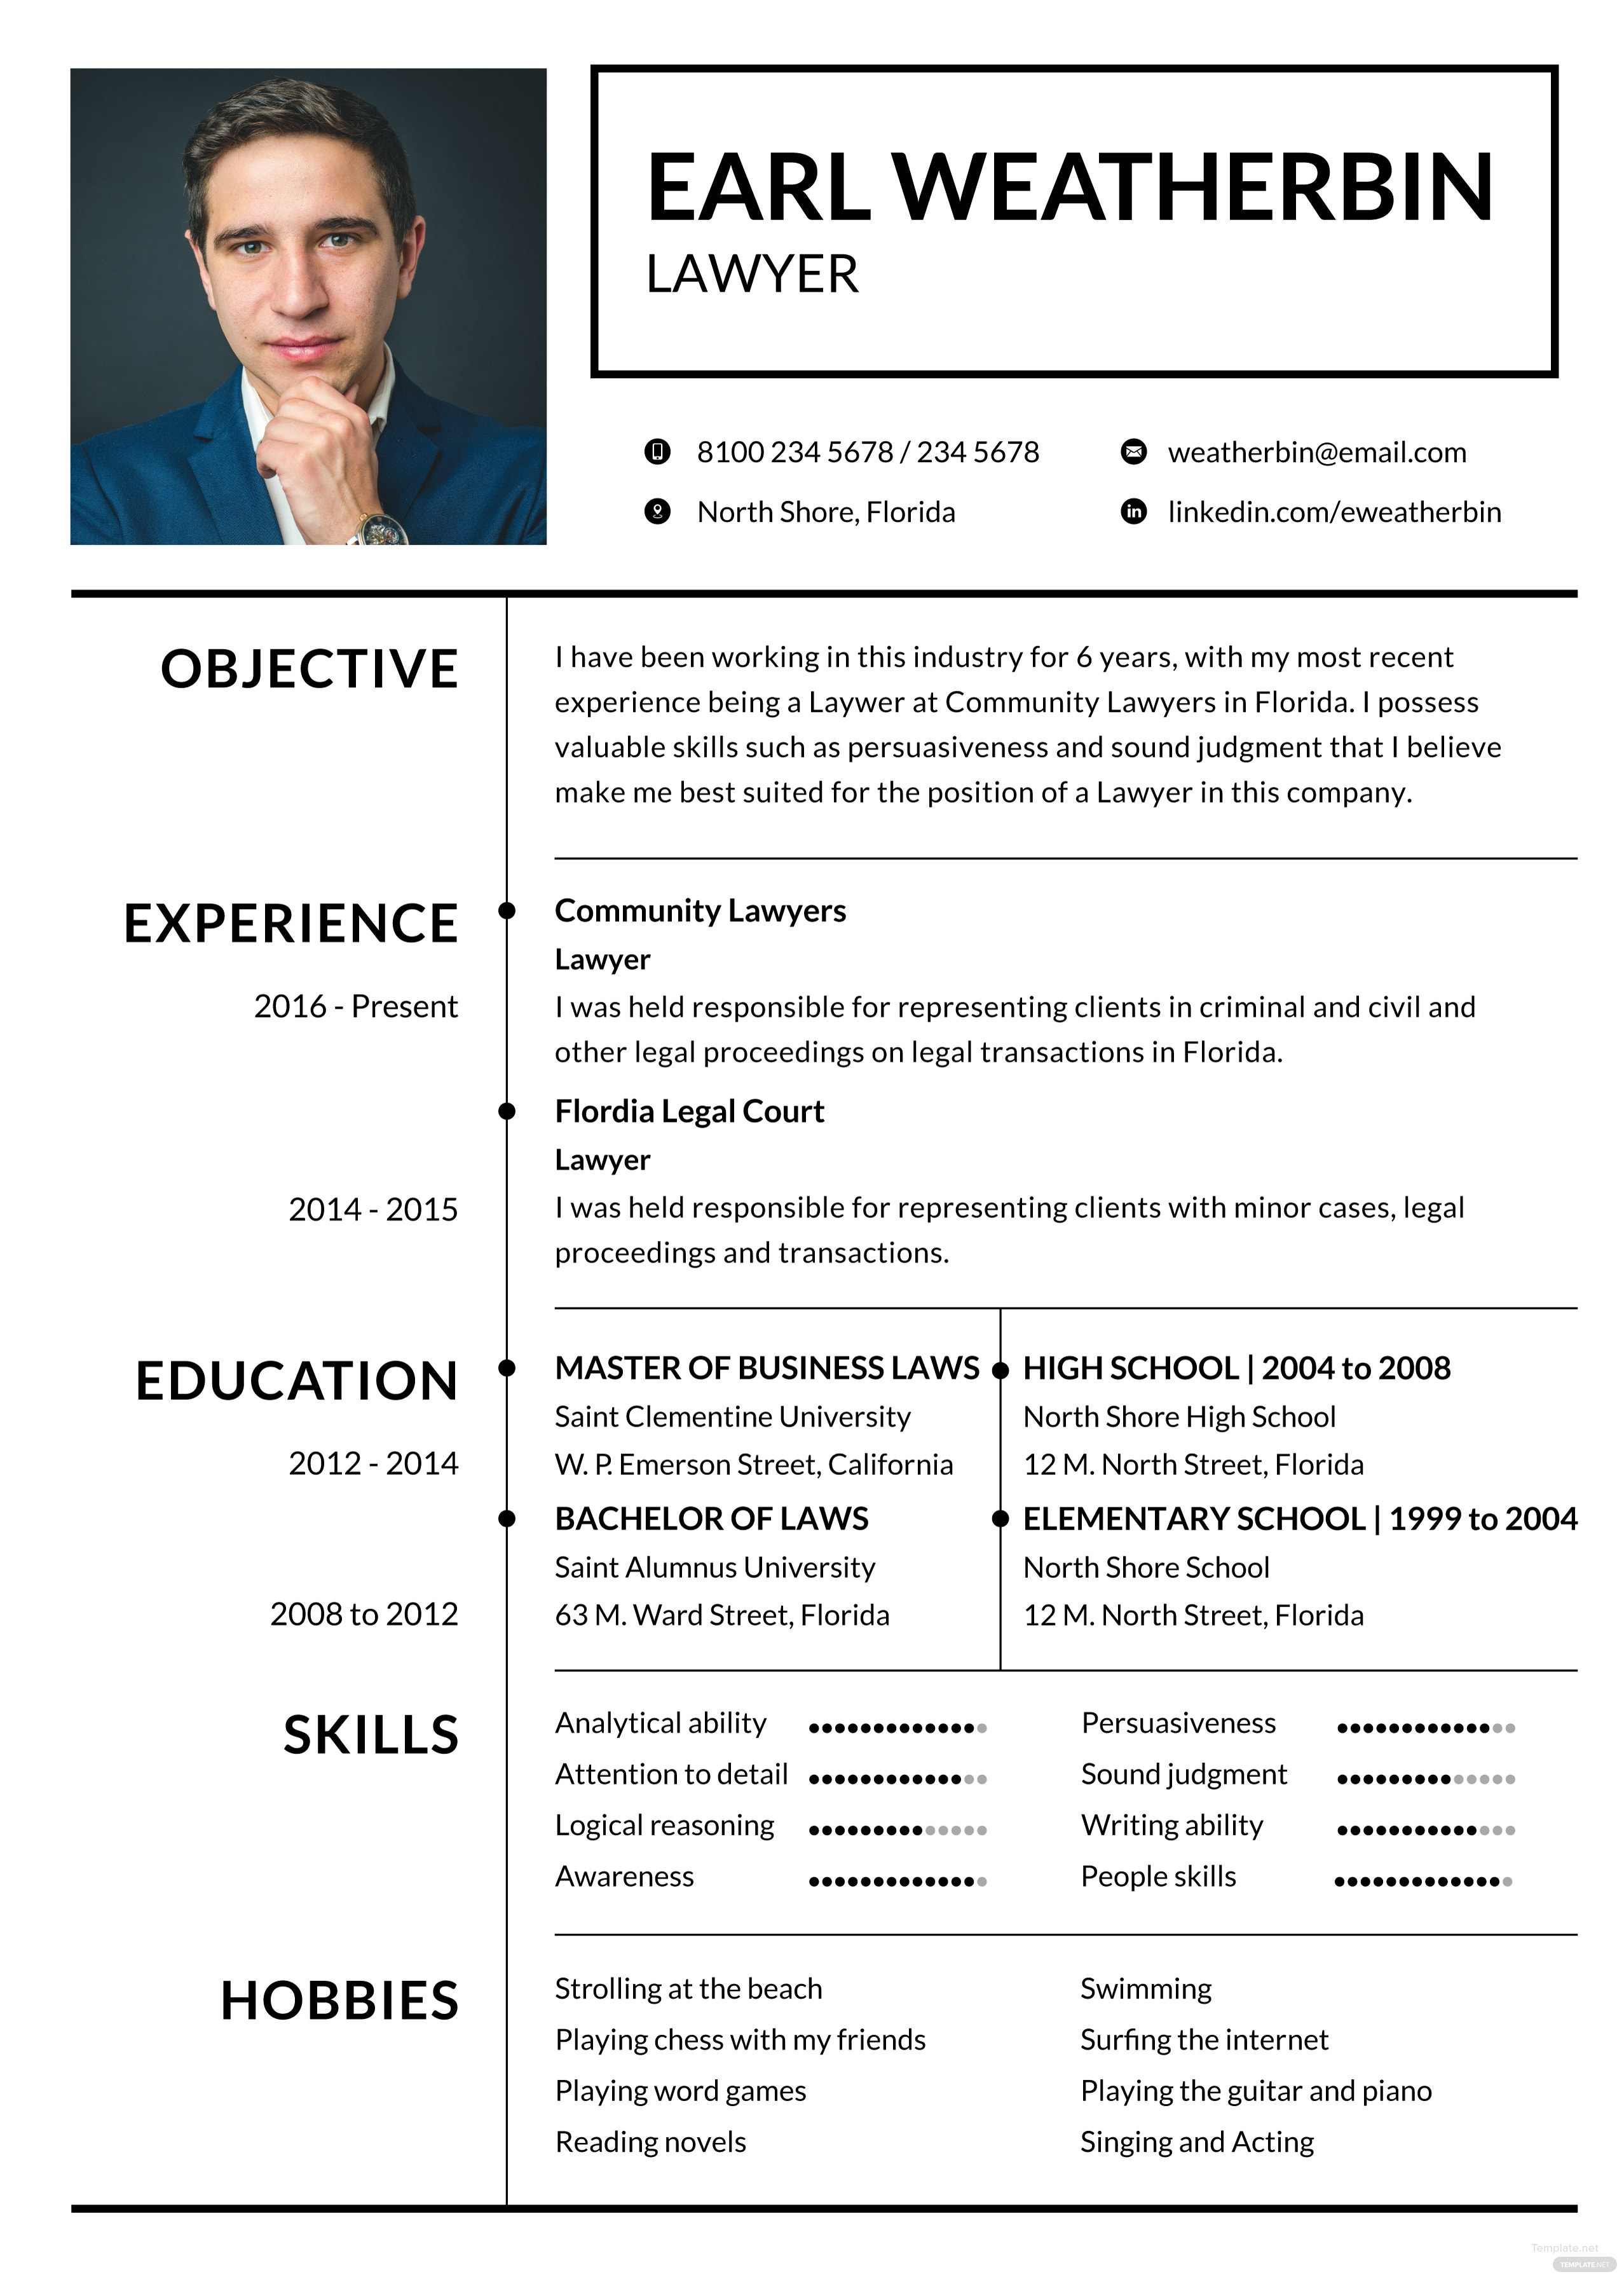 free basic lawyer resume template in adobe photoshop  illustrator  indesign  microsoft word